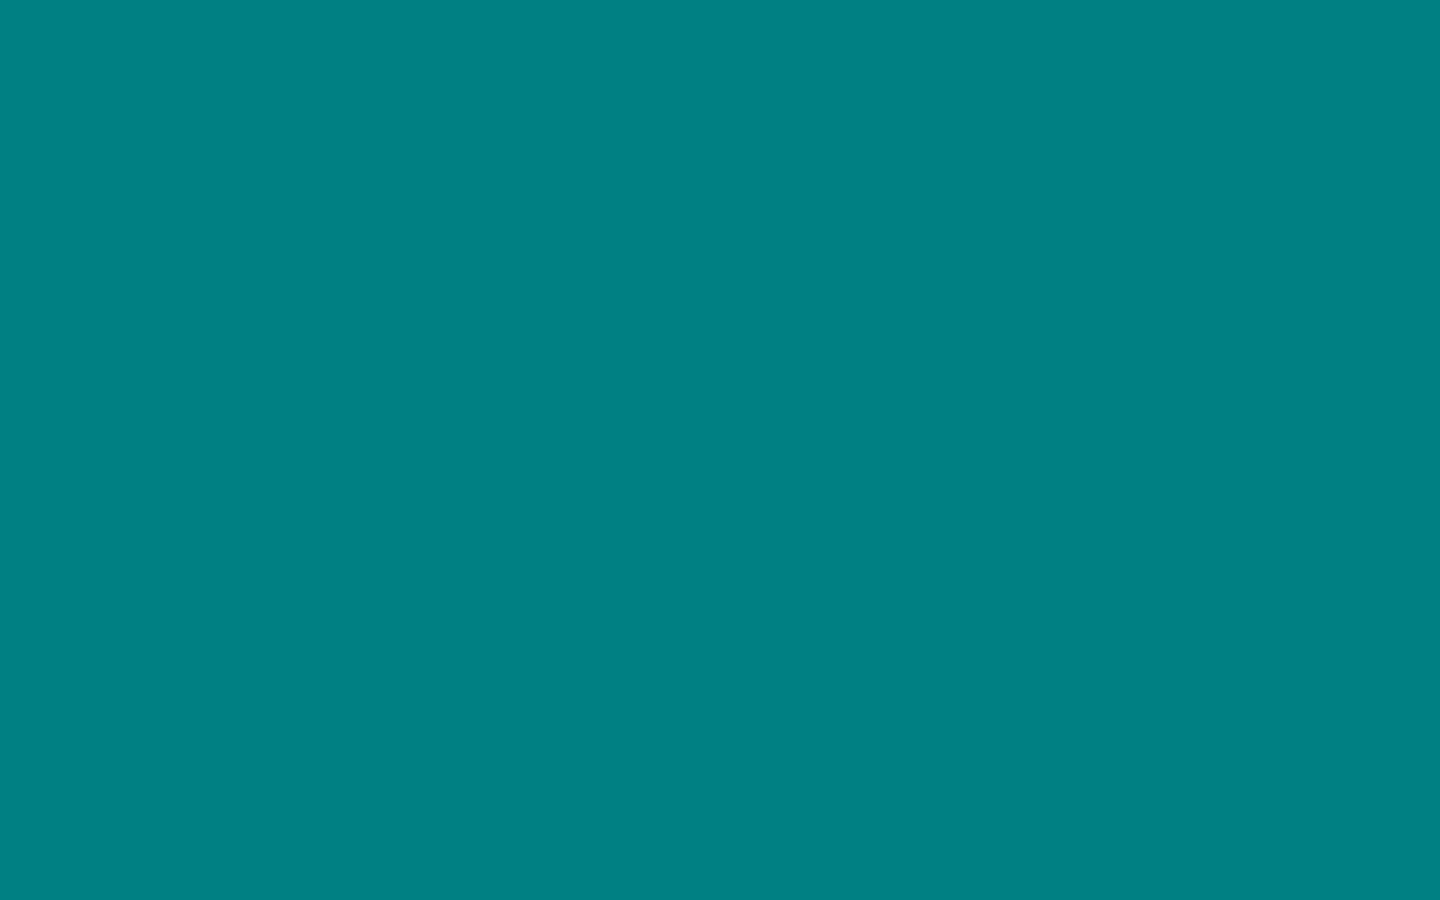 1440x900 Teal Solid Color Background